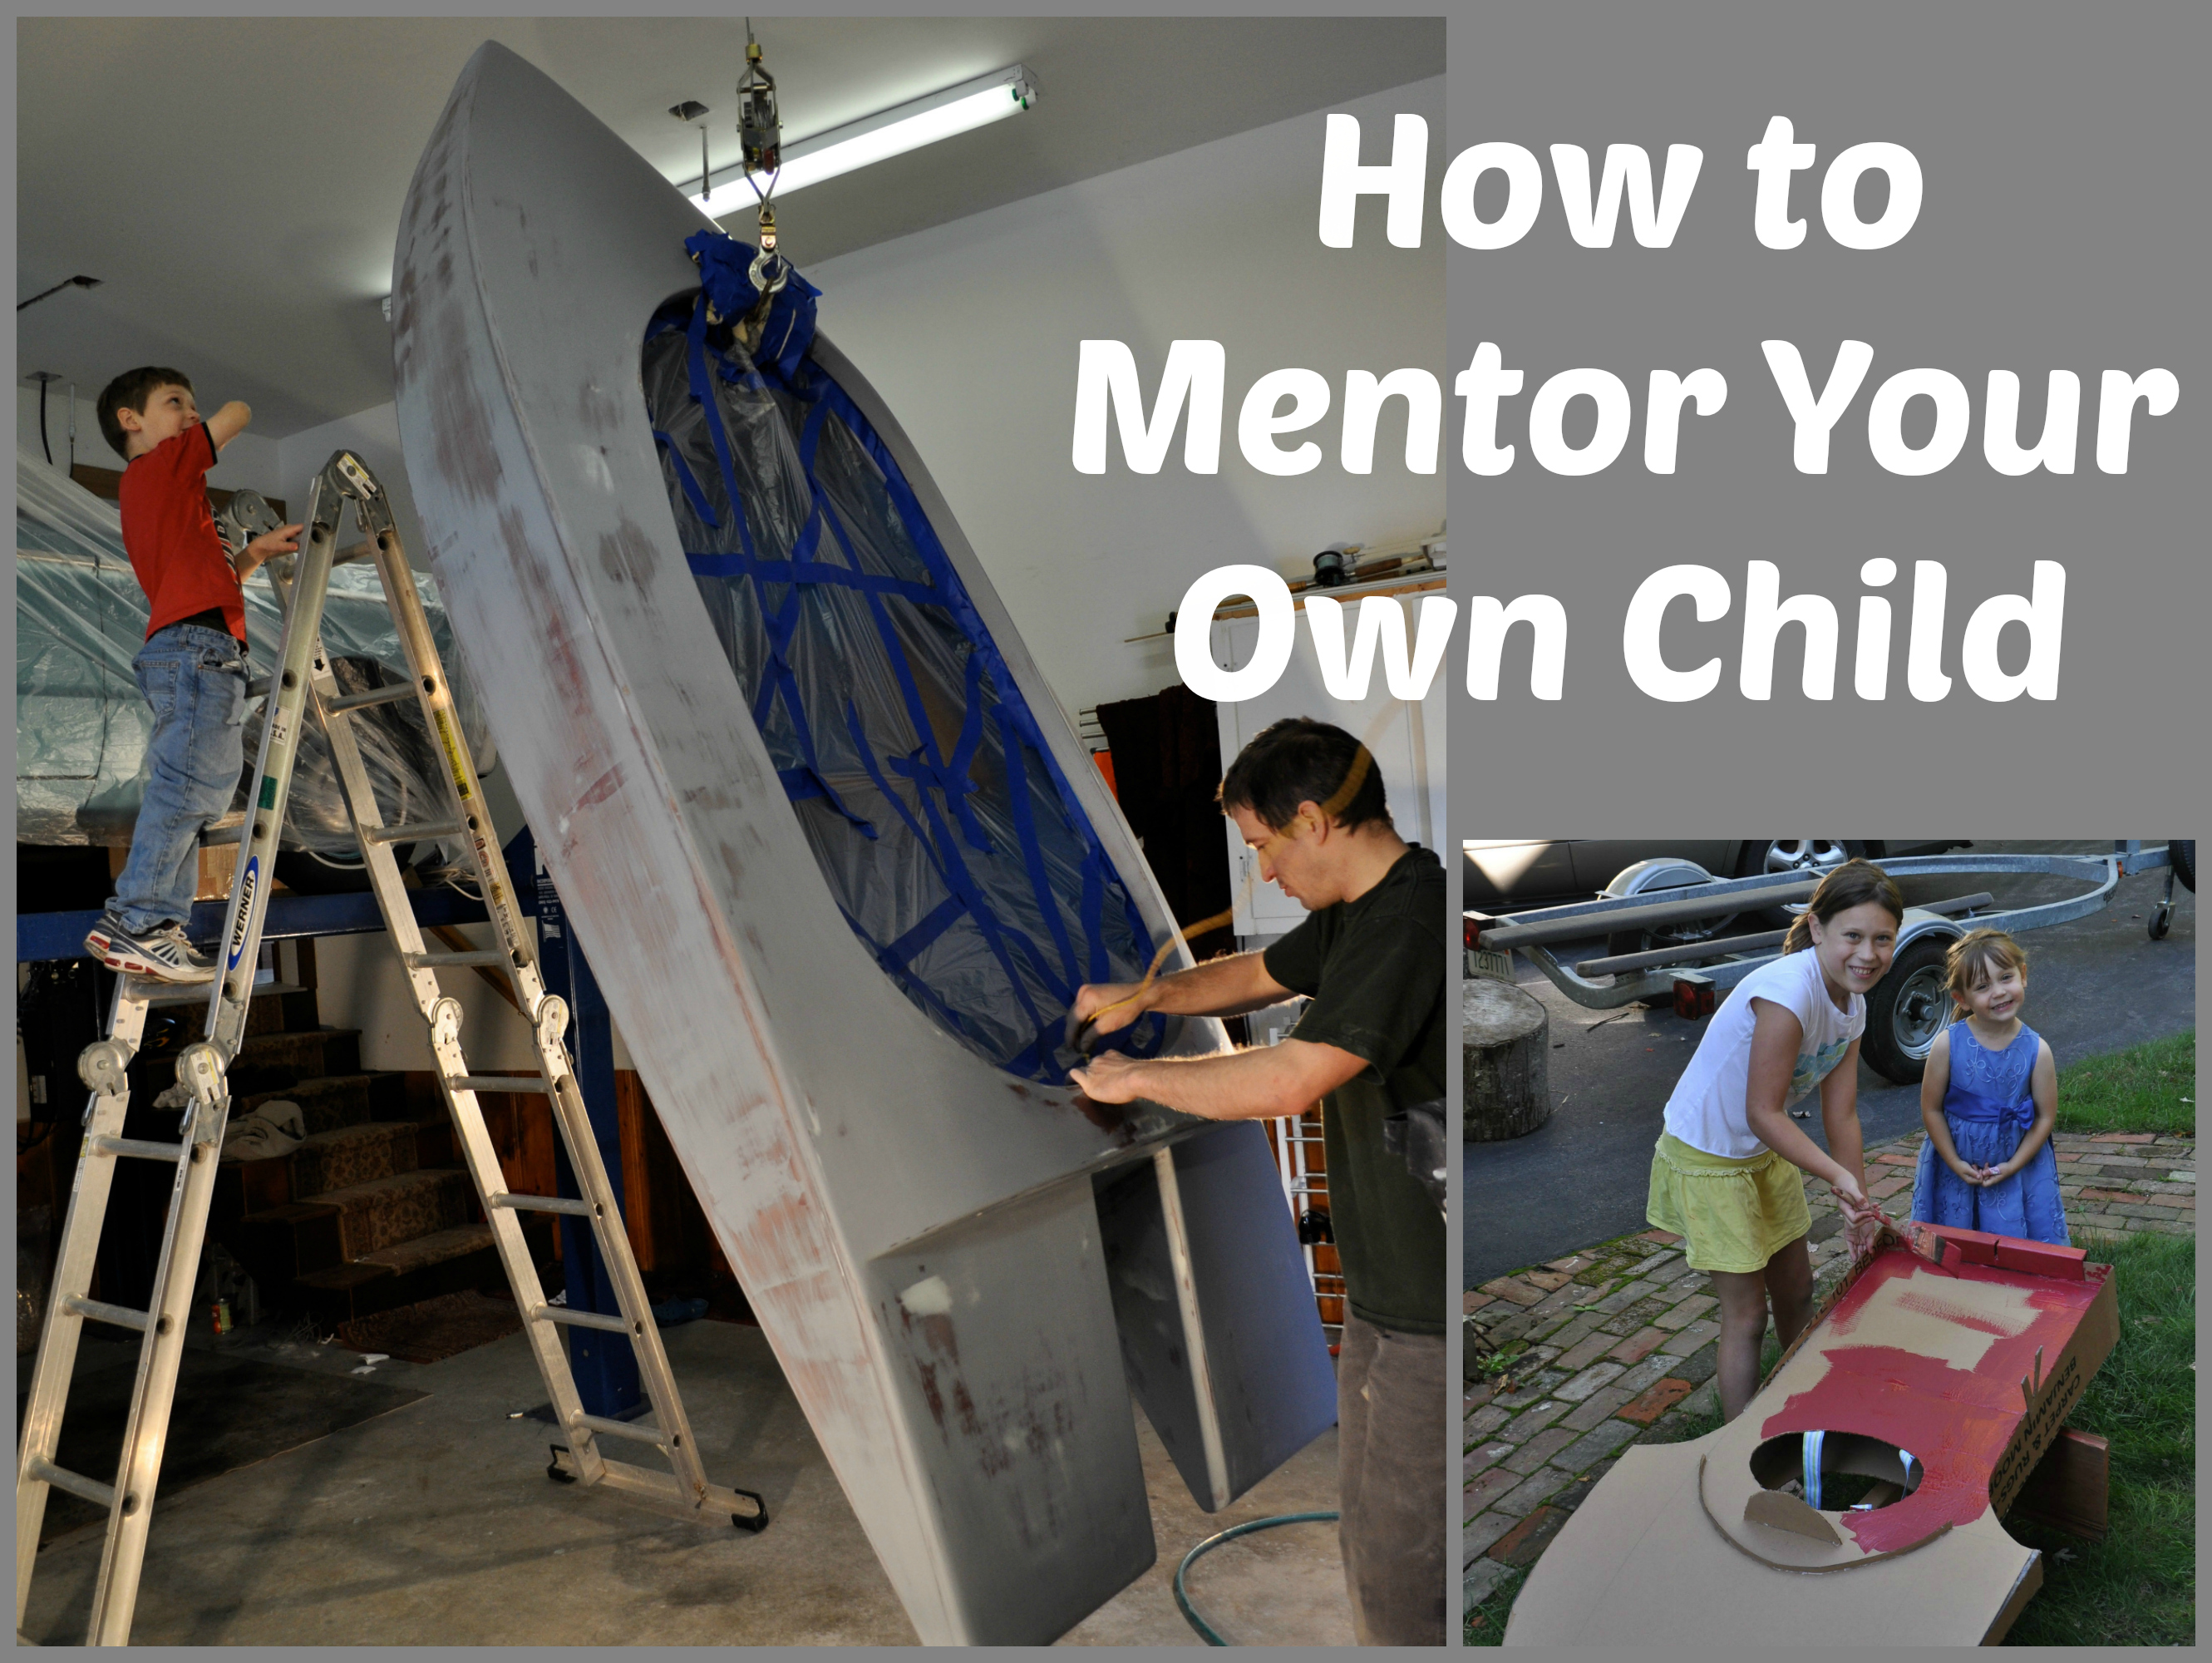 How to Mentor Your Own Child